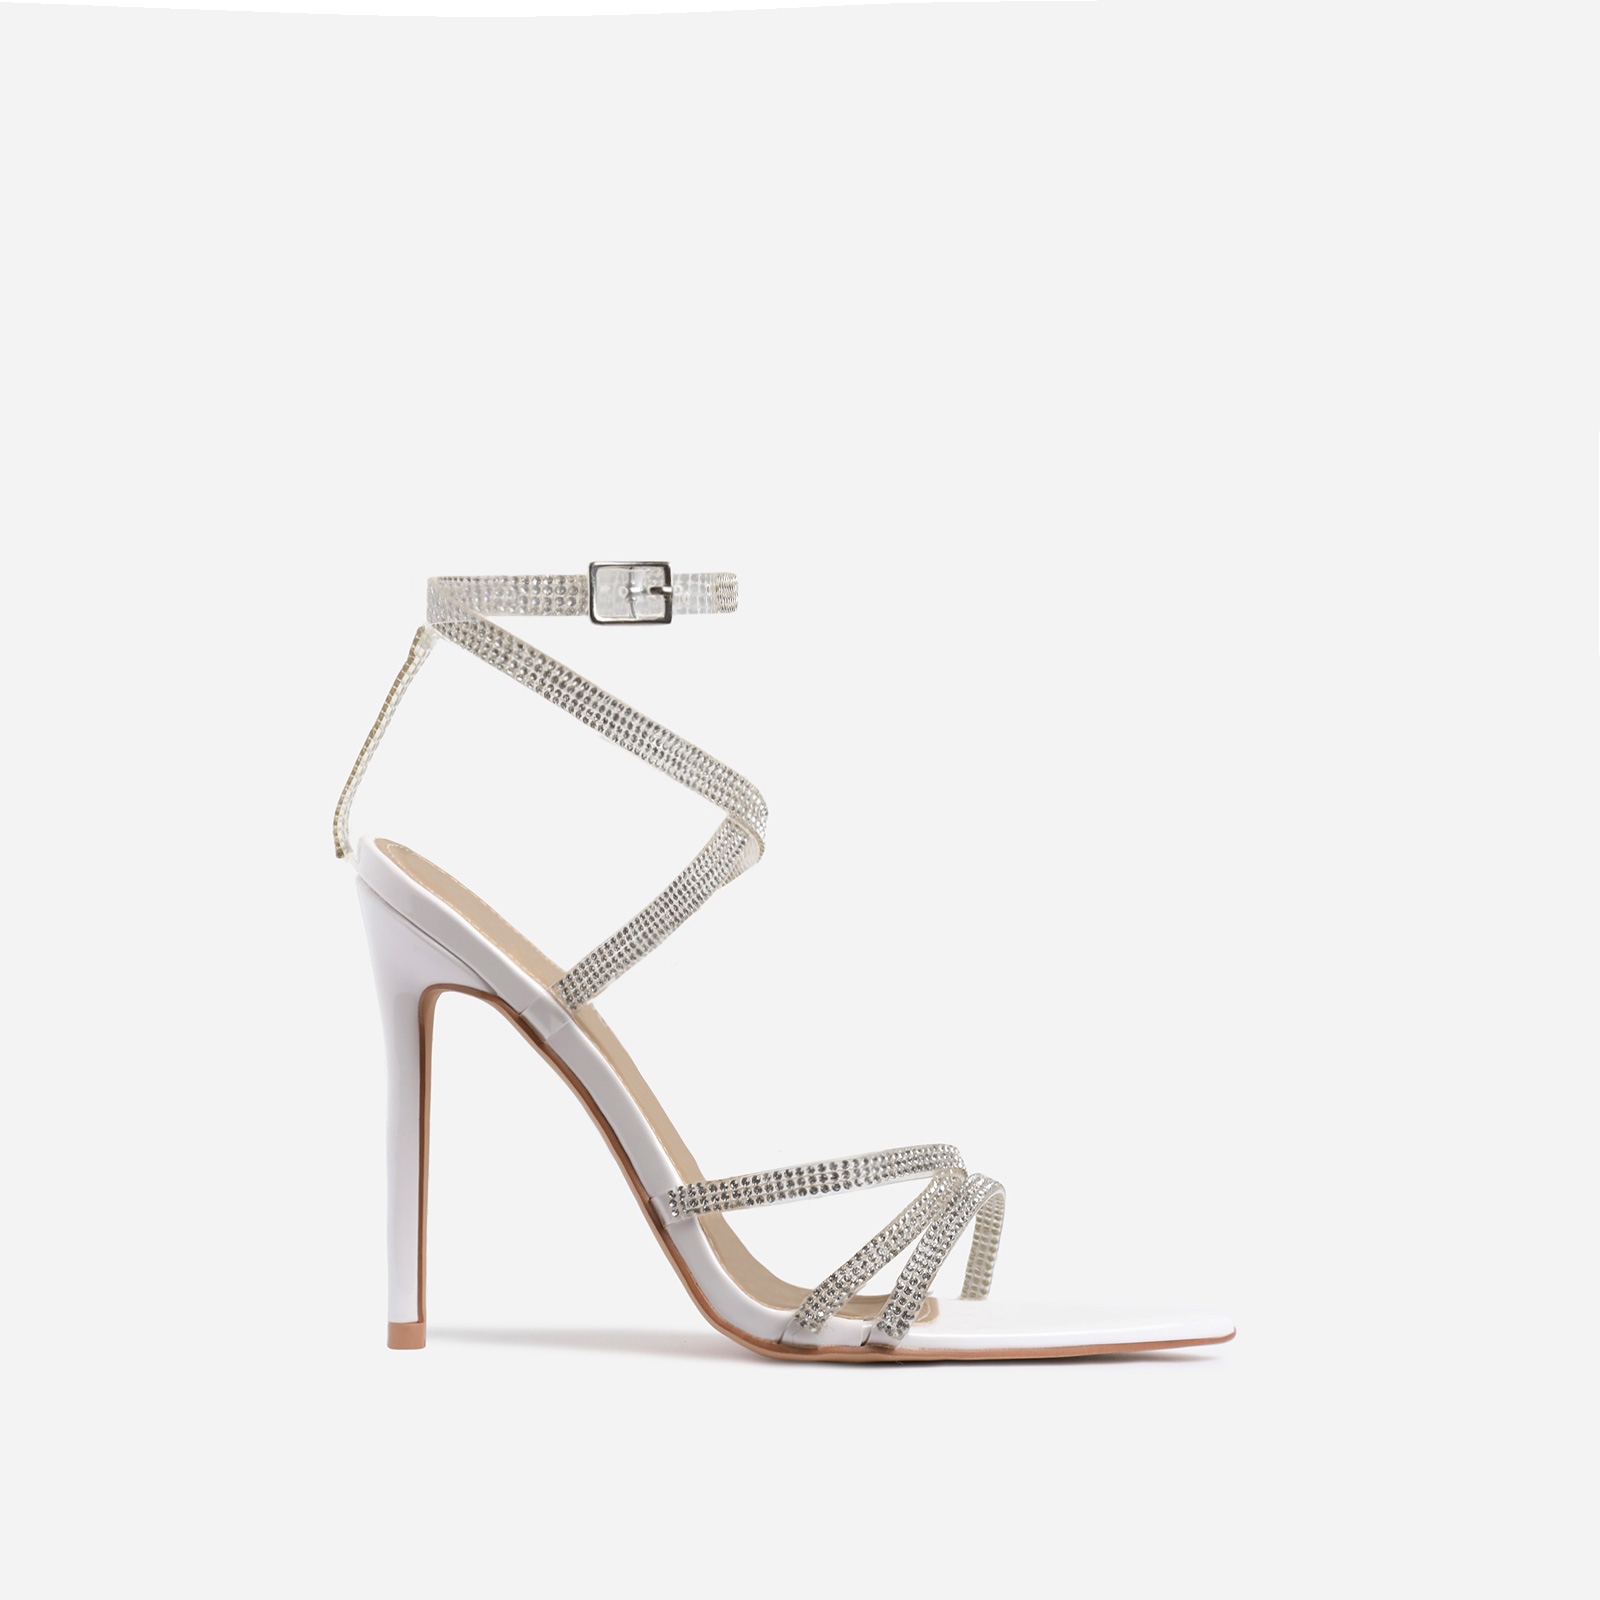 Precious Diamante Detail Pointed Toe Heel In White Patent